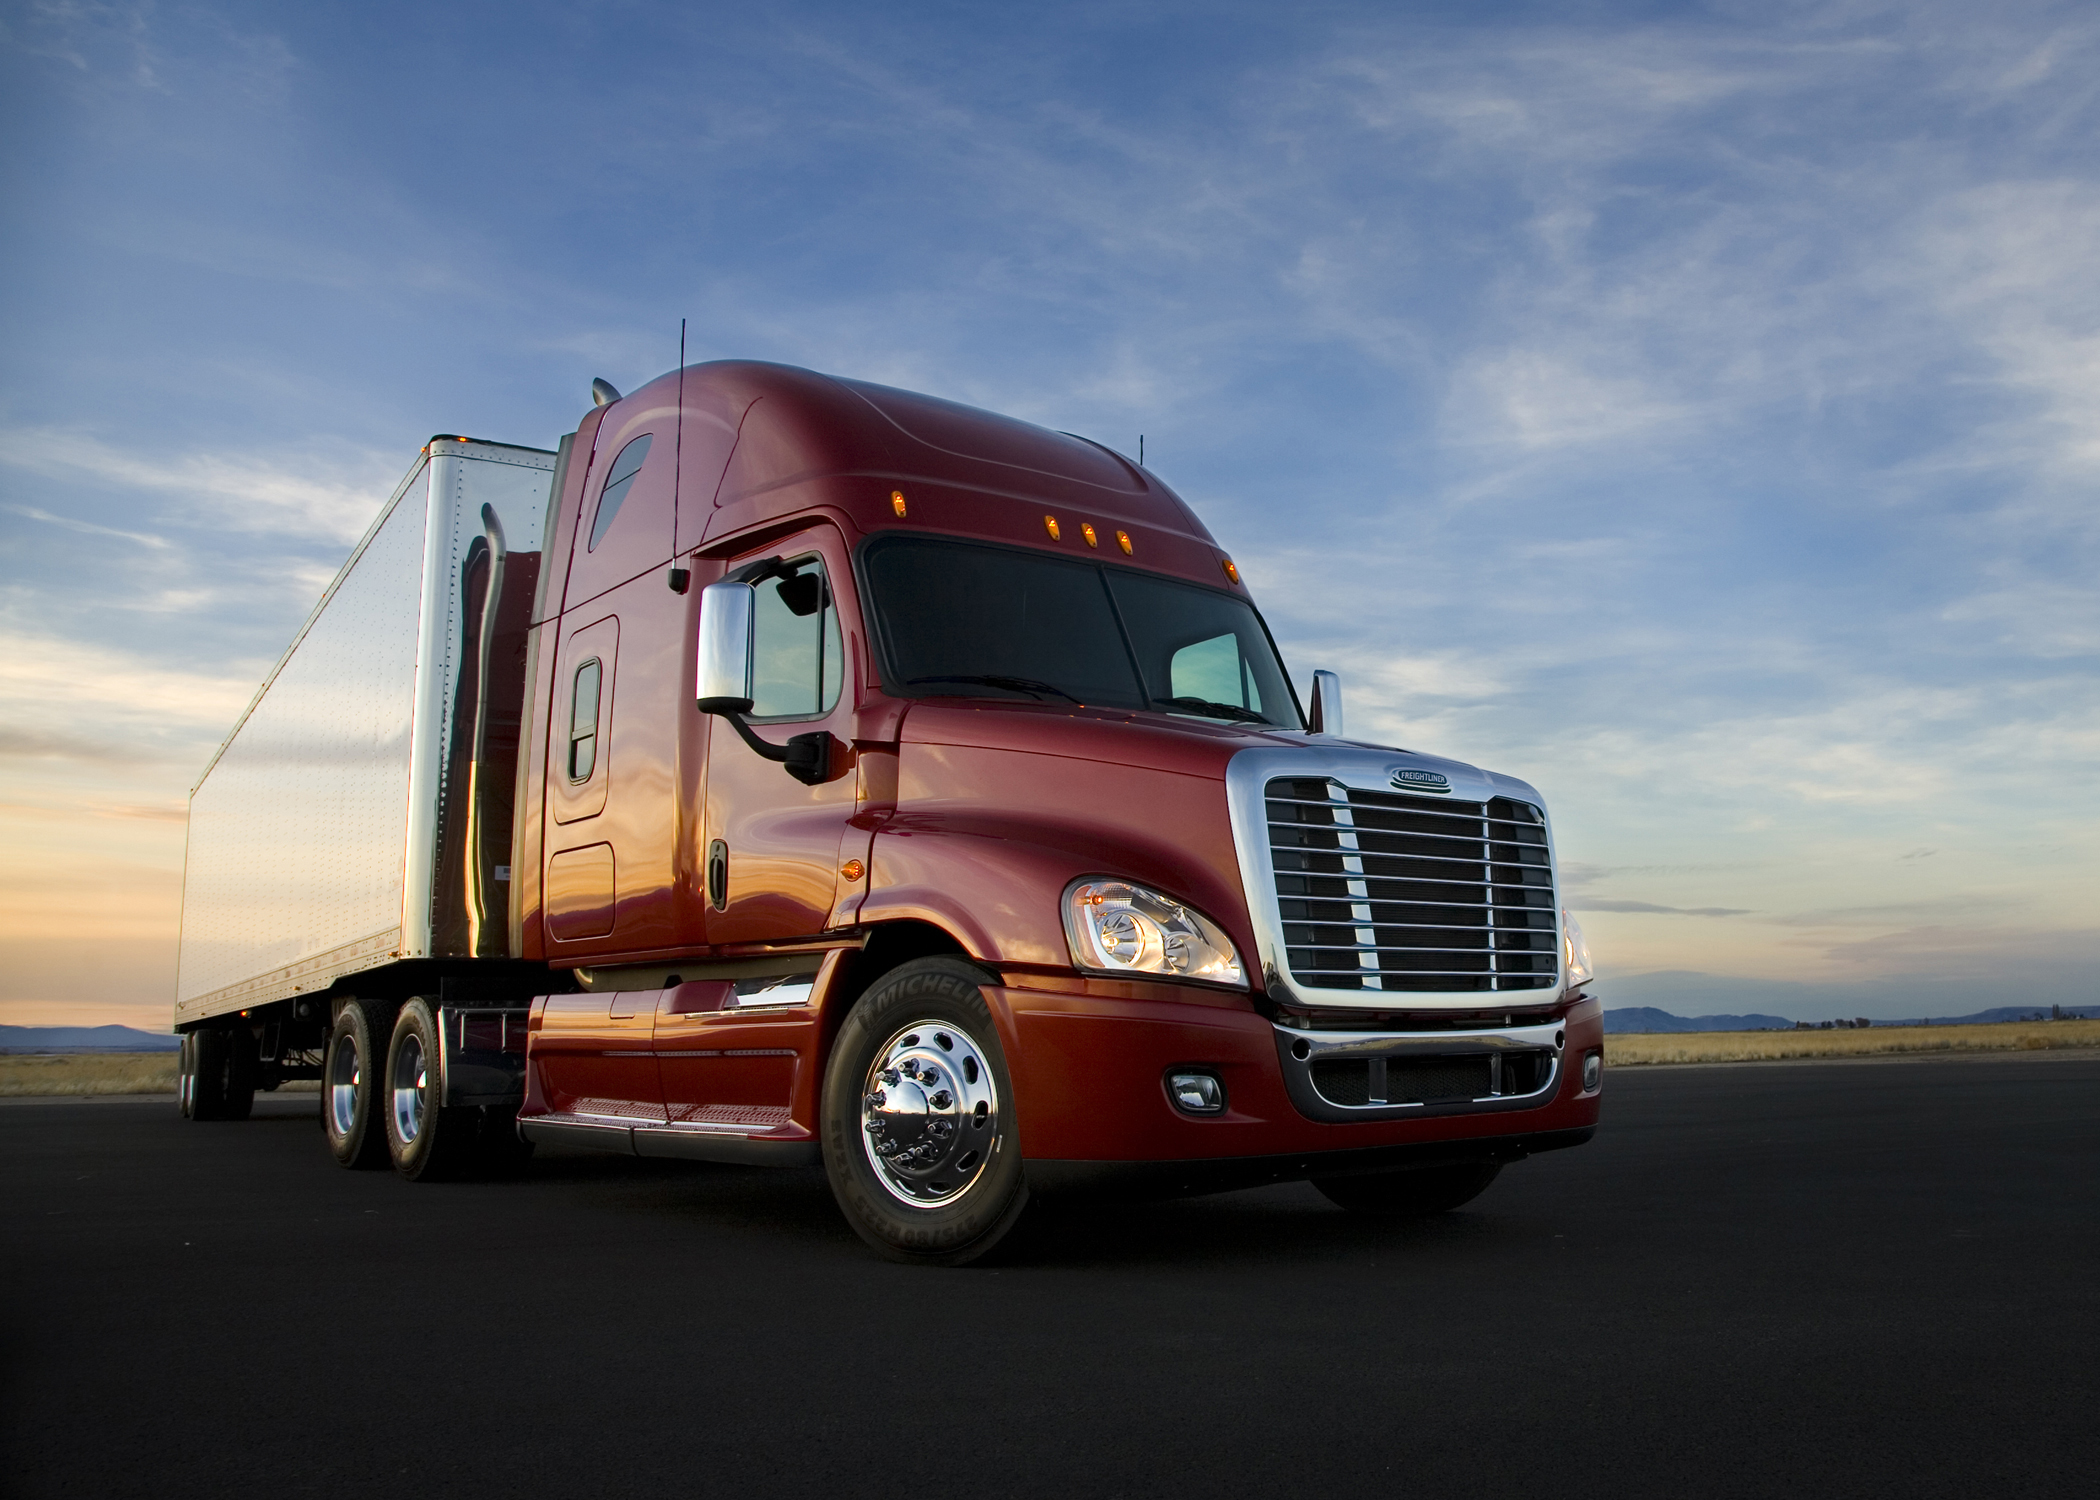 Trucking's Big Issues for 2015 – Part 1